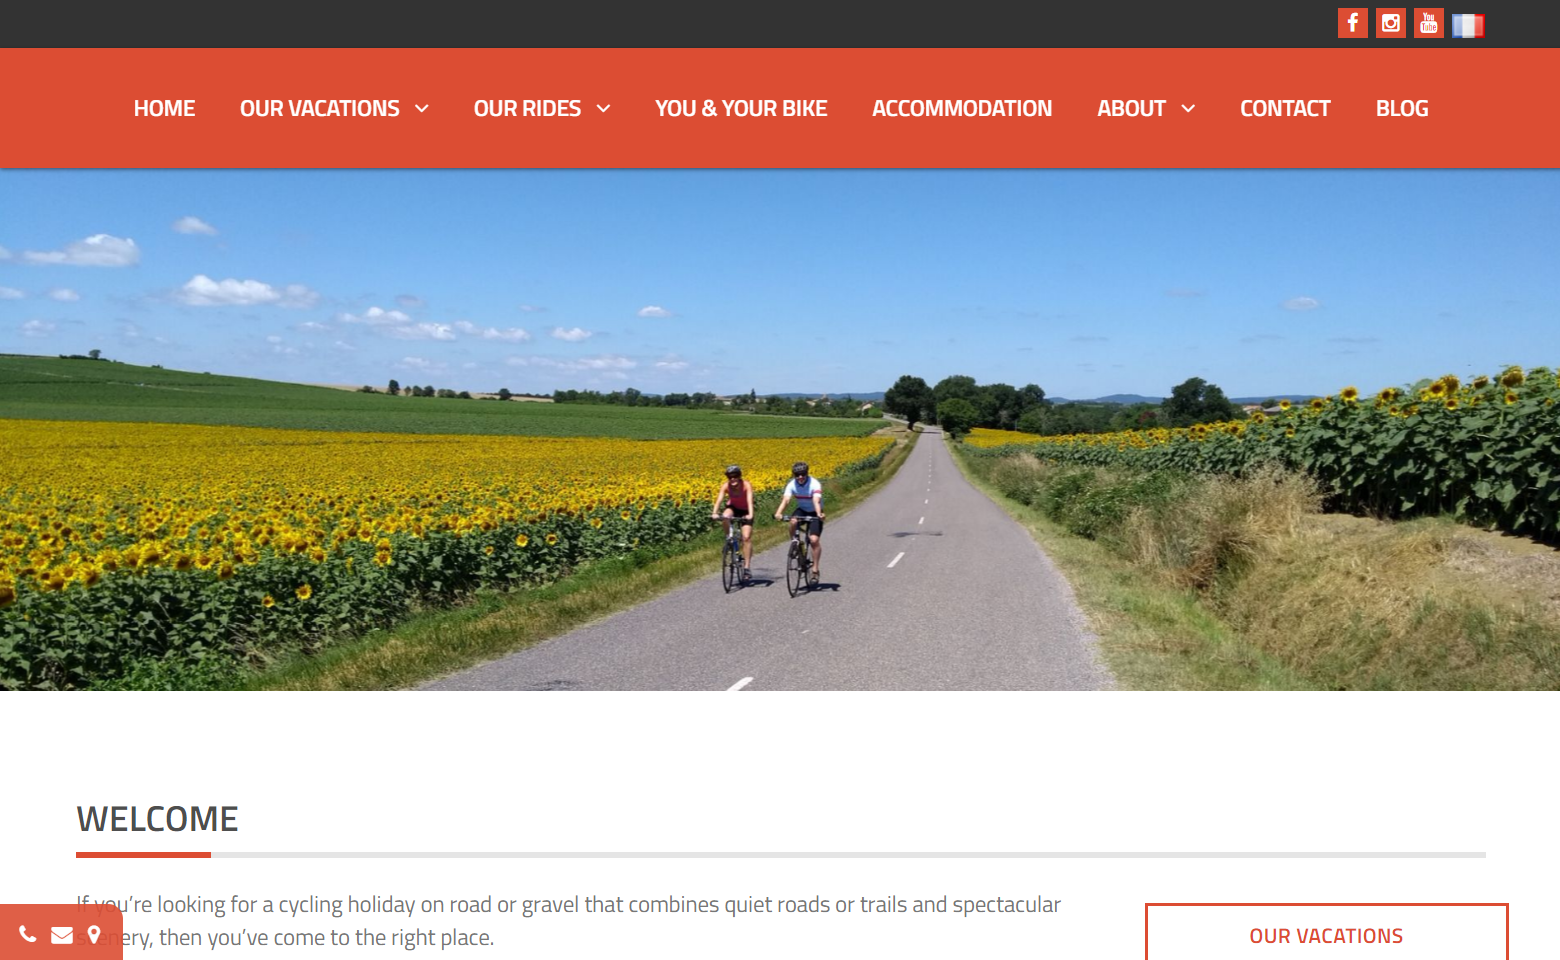 A clean website front page with a red header menu followed by an image of two cyclists riding through sunflowers with text describing the business underneath